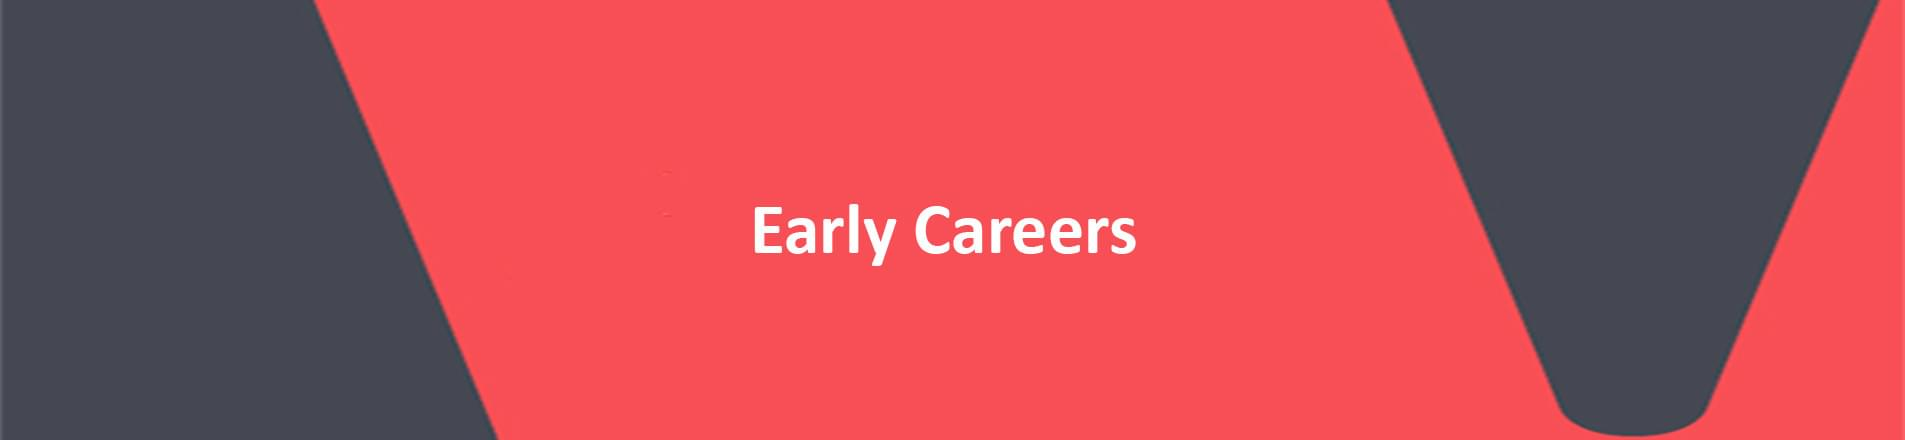 Image of the words early careers in white font on a red background